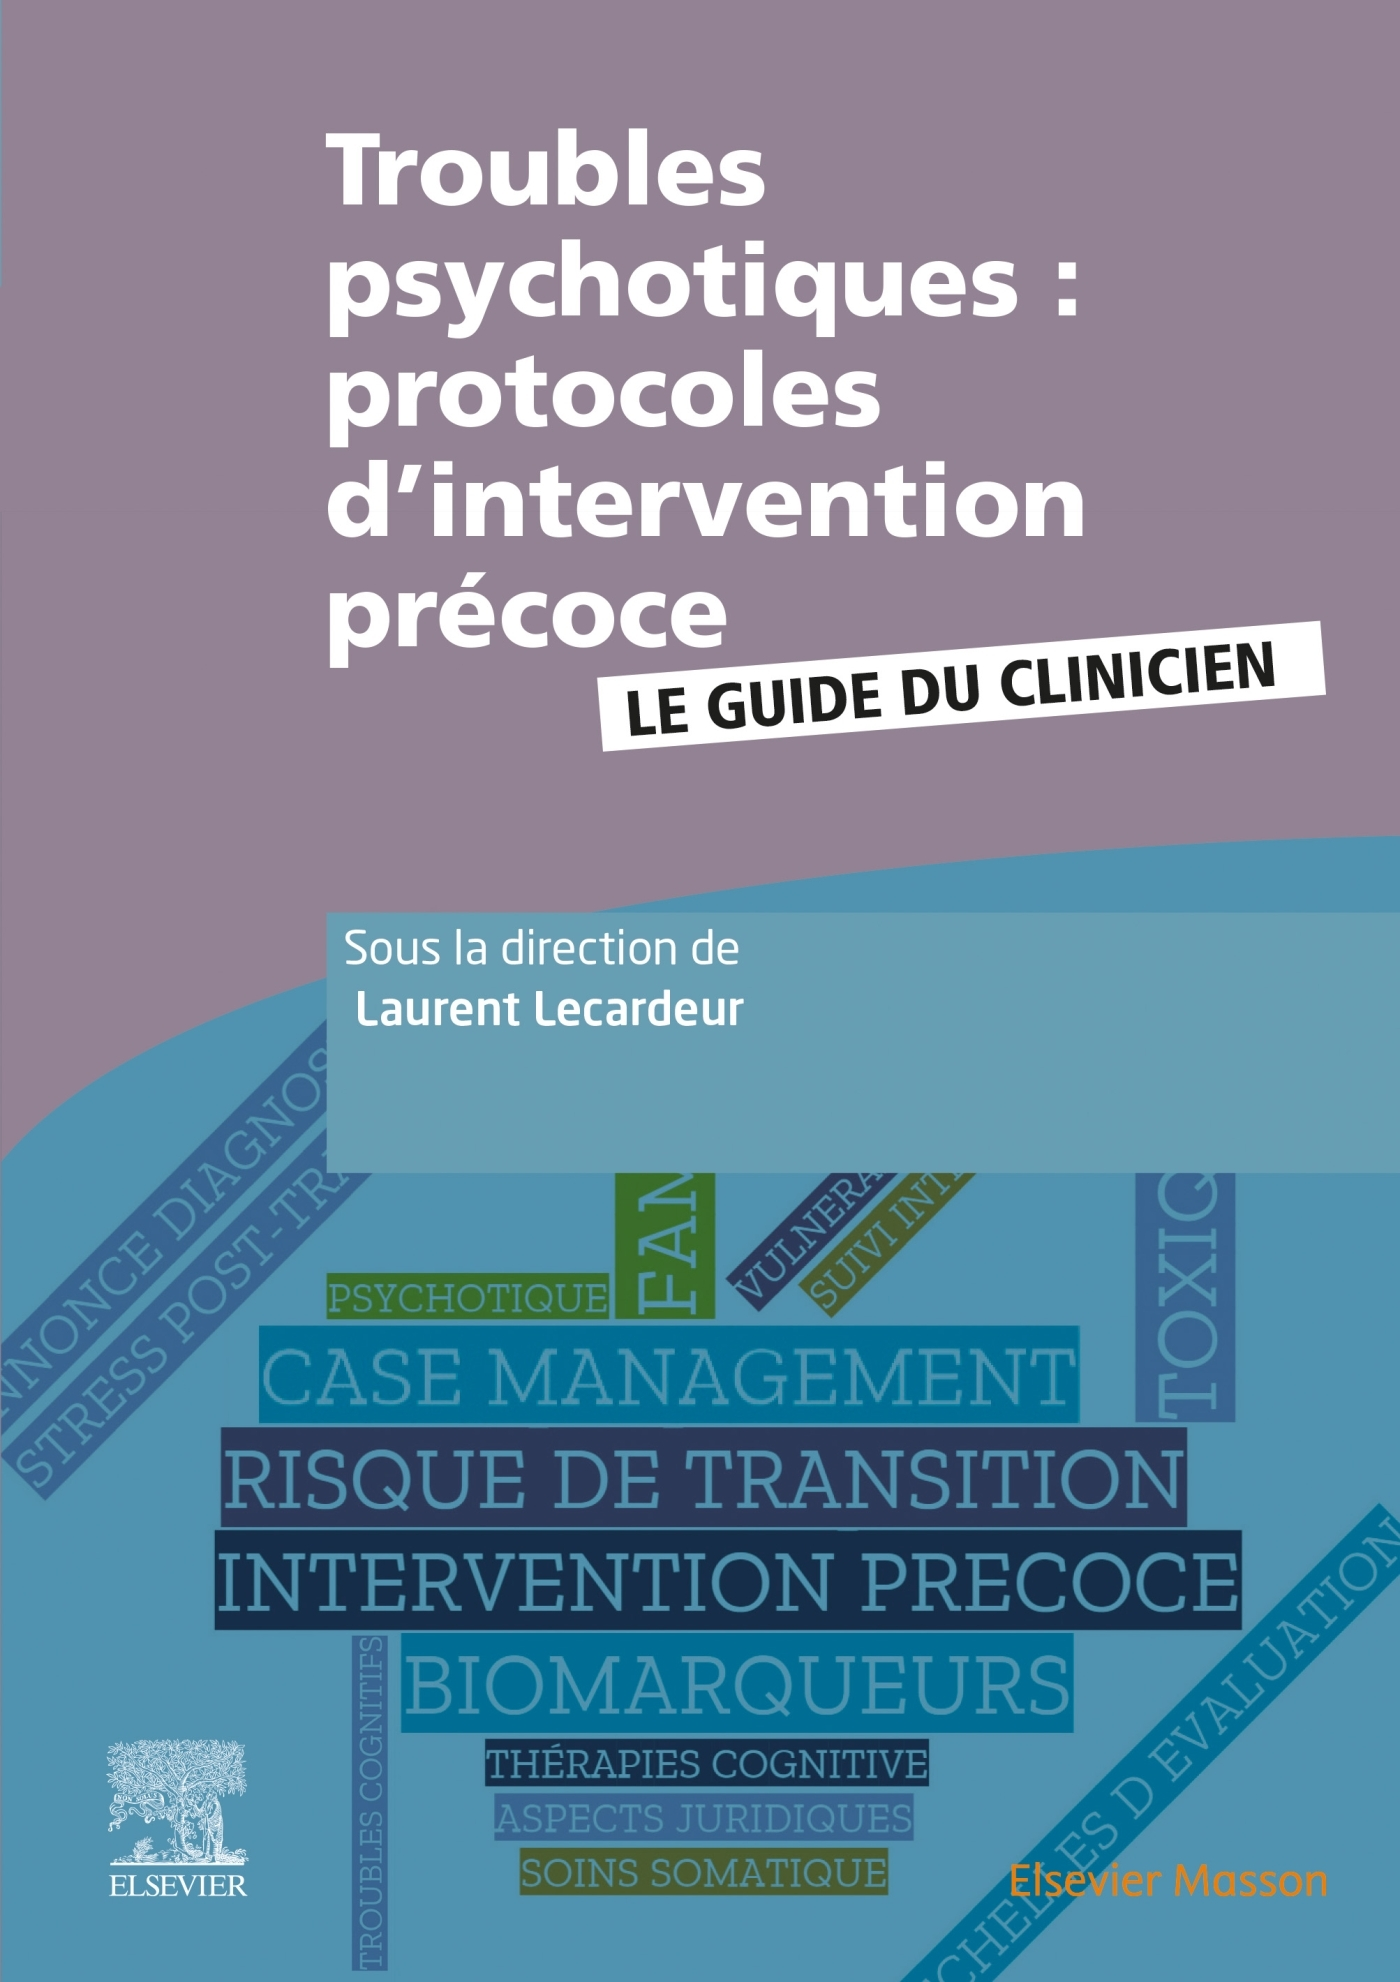 TROUBLES PSYCHOTIQUES : PROTOCOLES D'INTERVENTION PRECOCE - LE GUIDE DU CLINICIEN